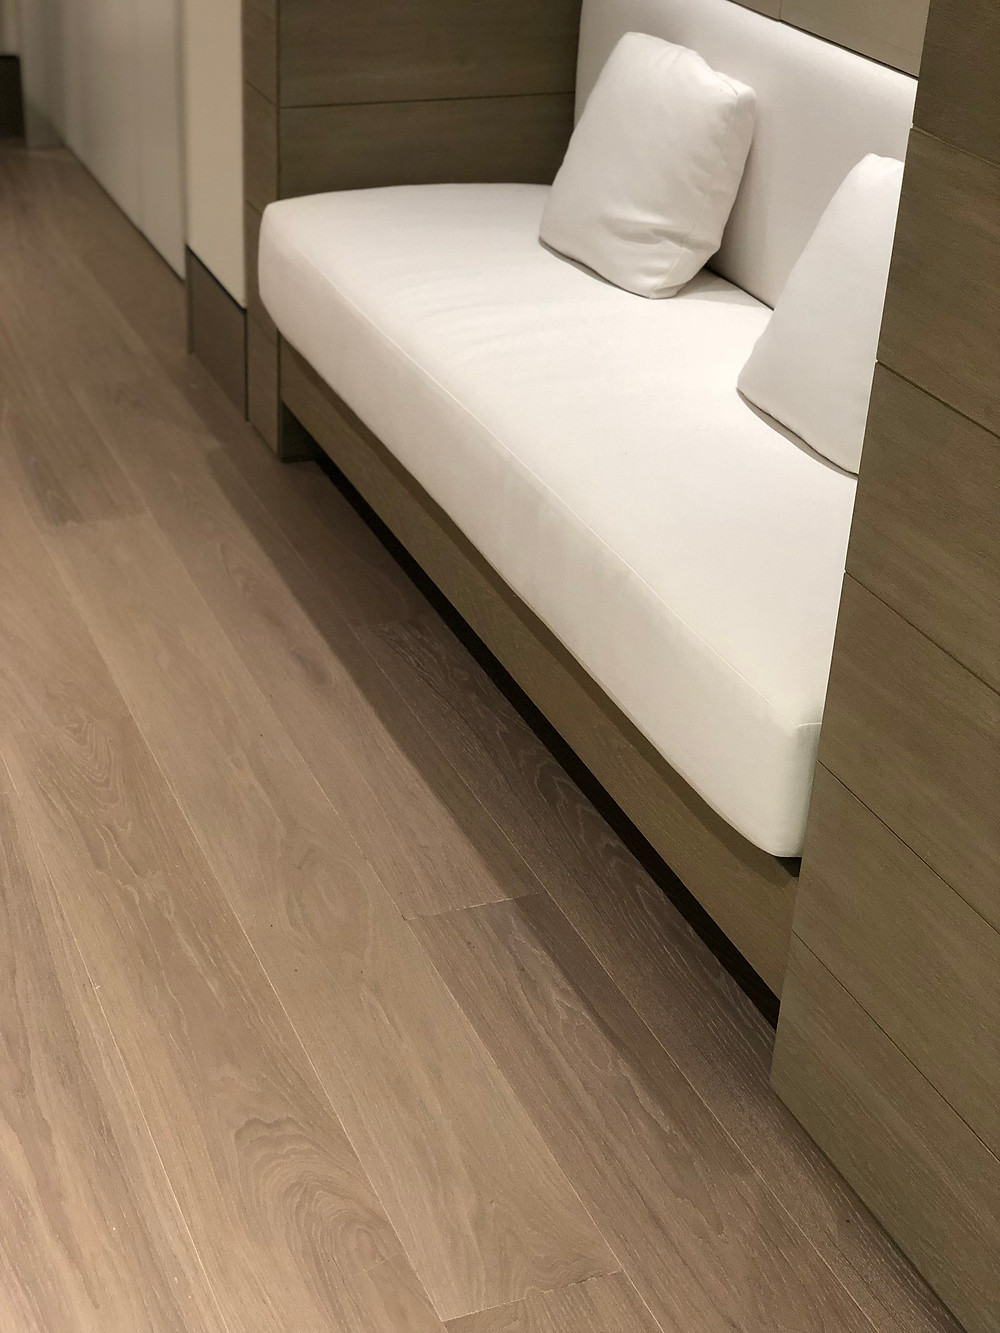 Advantages of hardwood flooring